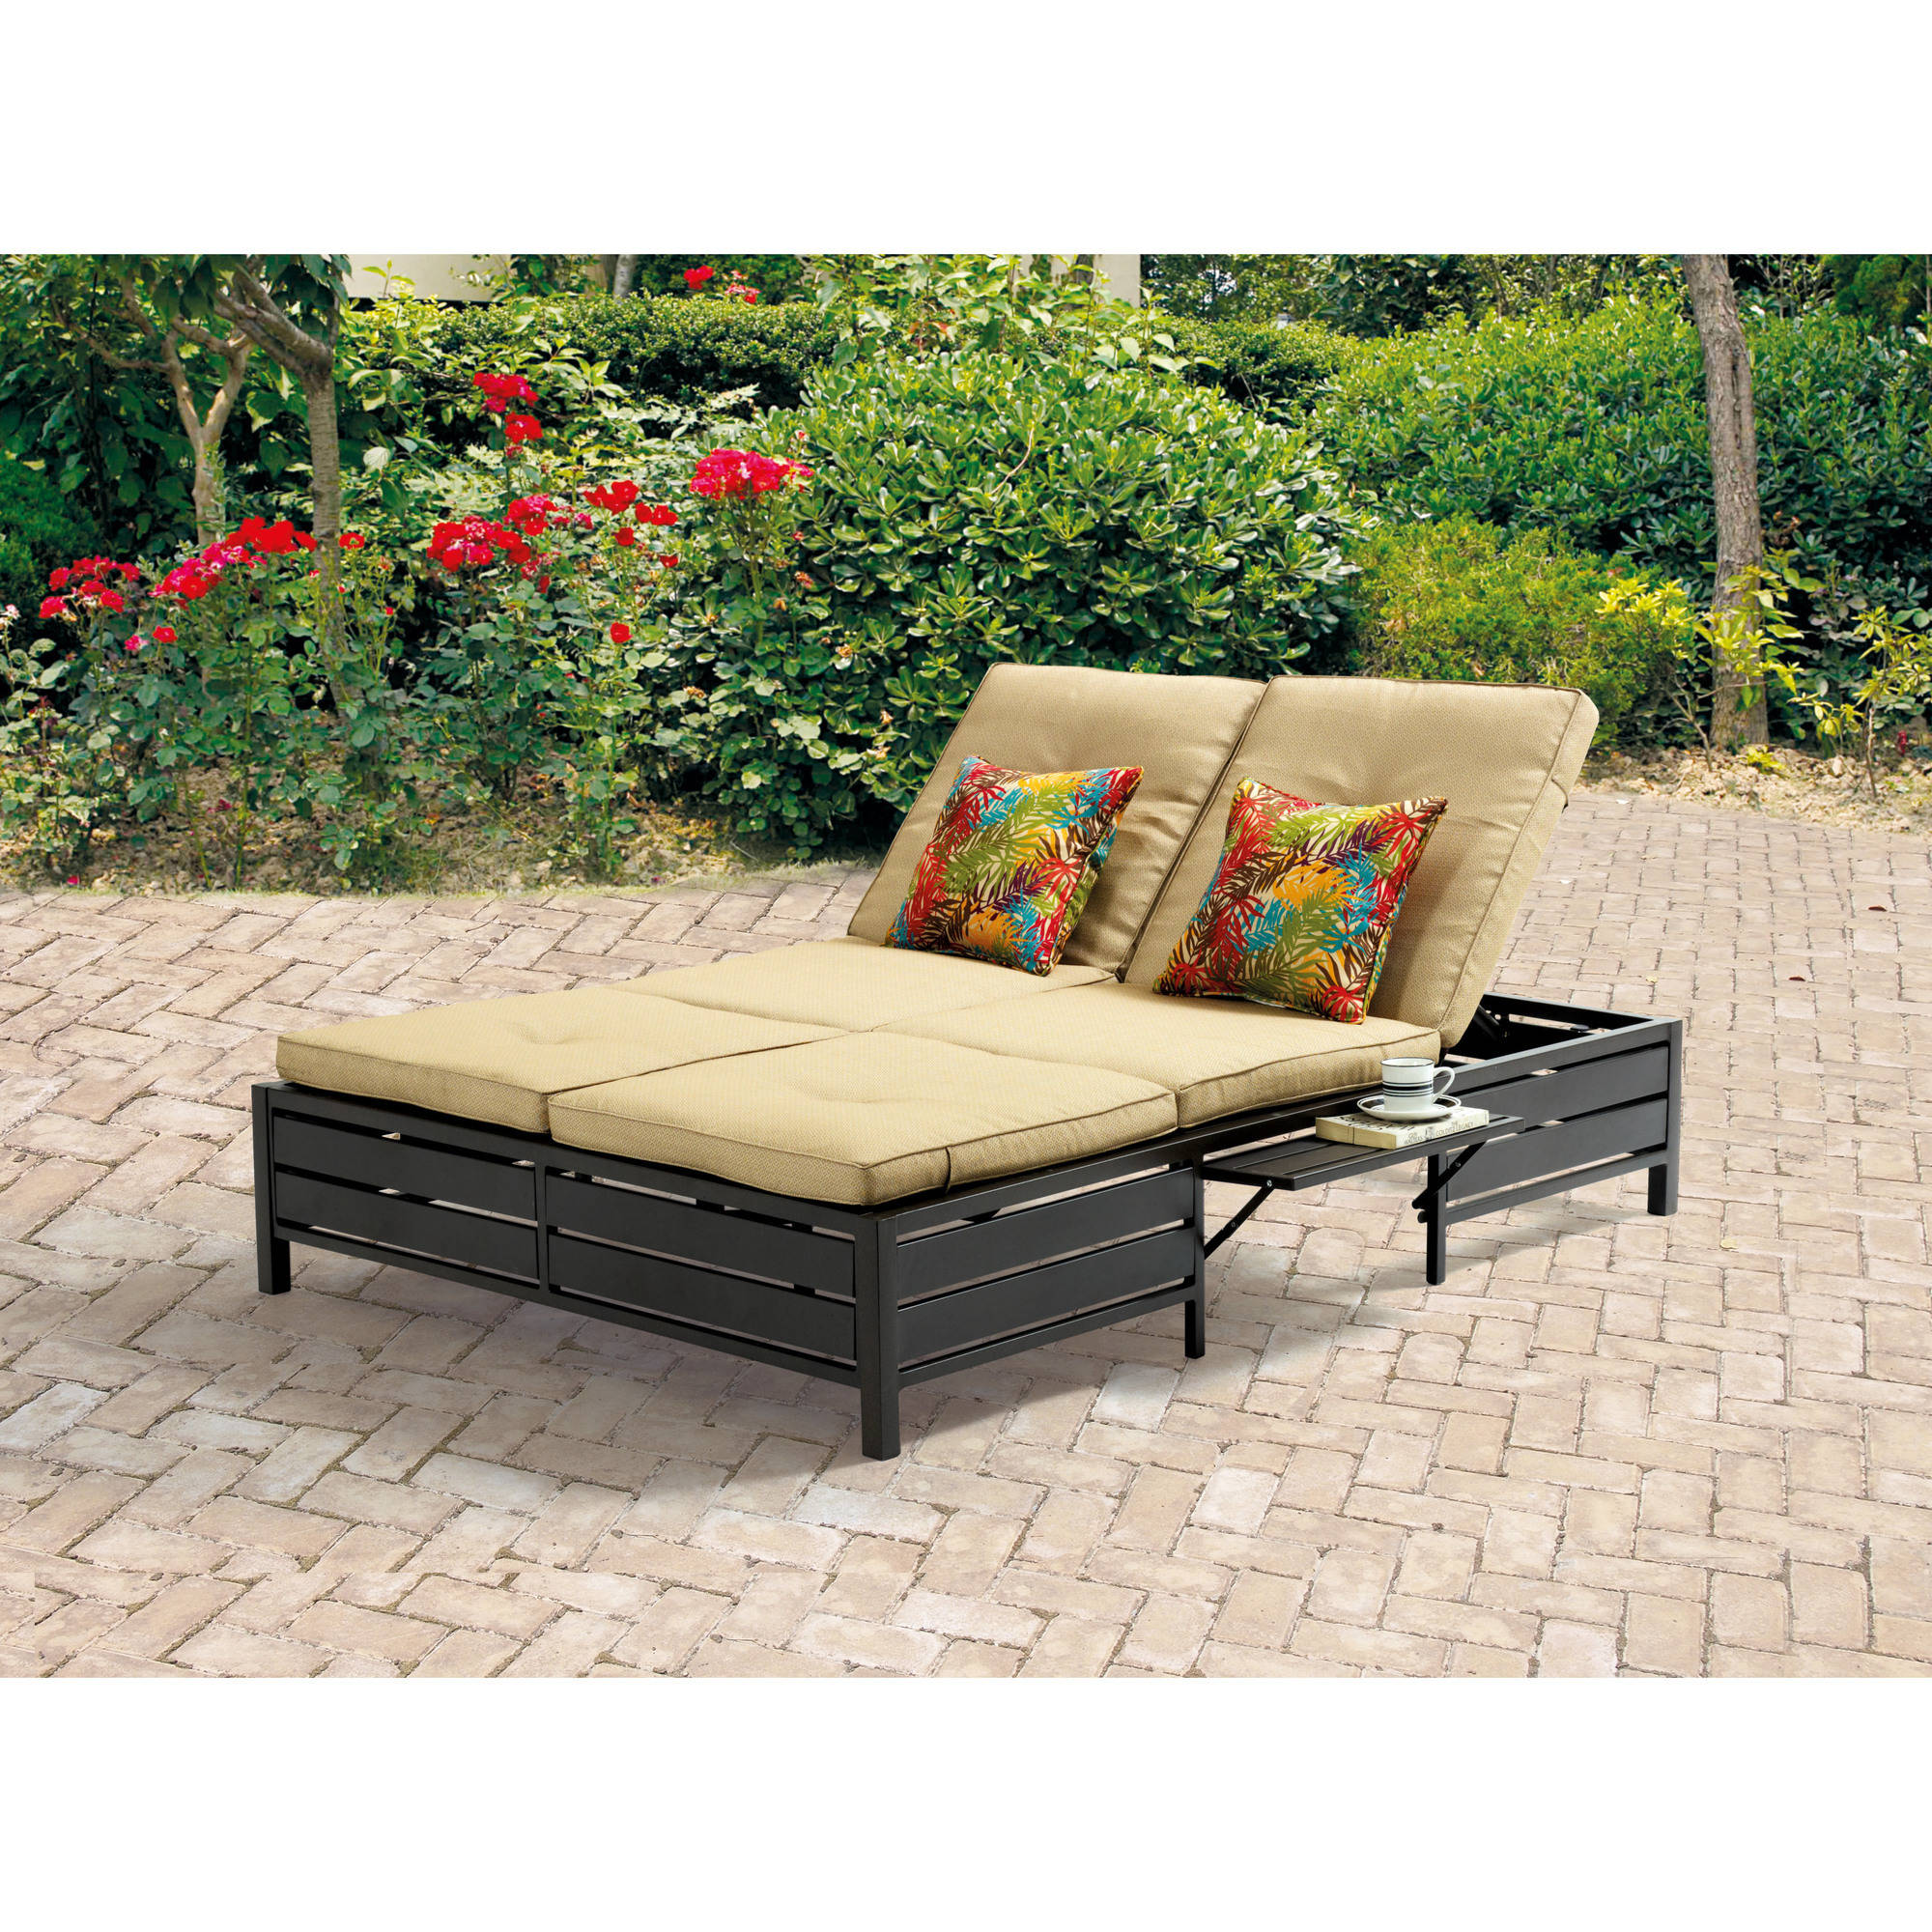 Christopher Knight Home Outdoor Brown Wicker Cushioned Adjustable Chaise  Lounge (Set Of 2)   Walmart.com